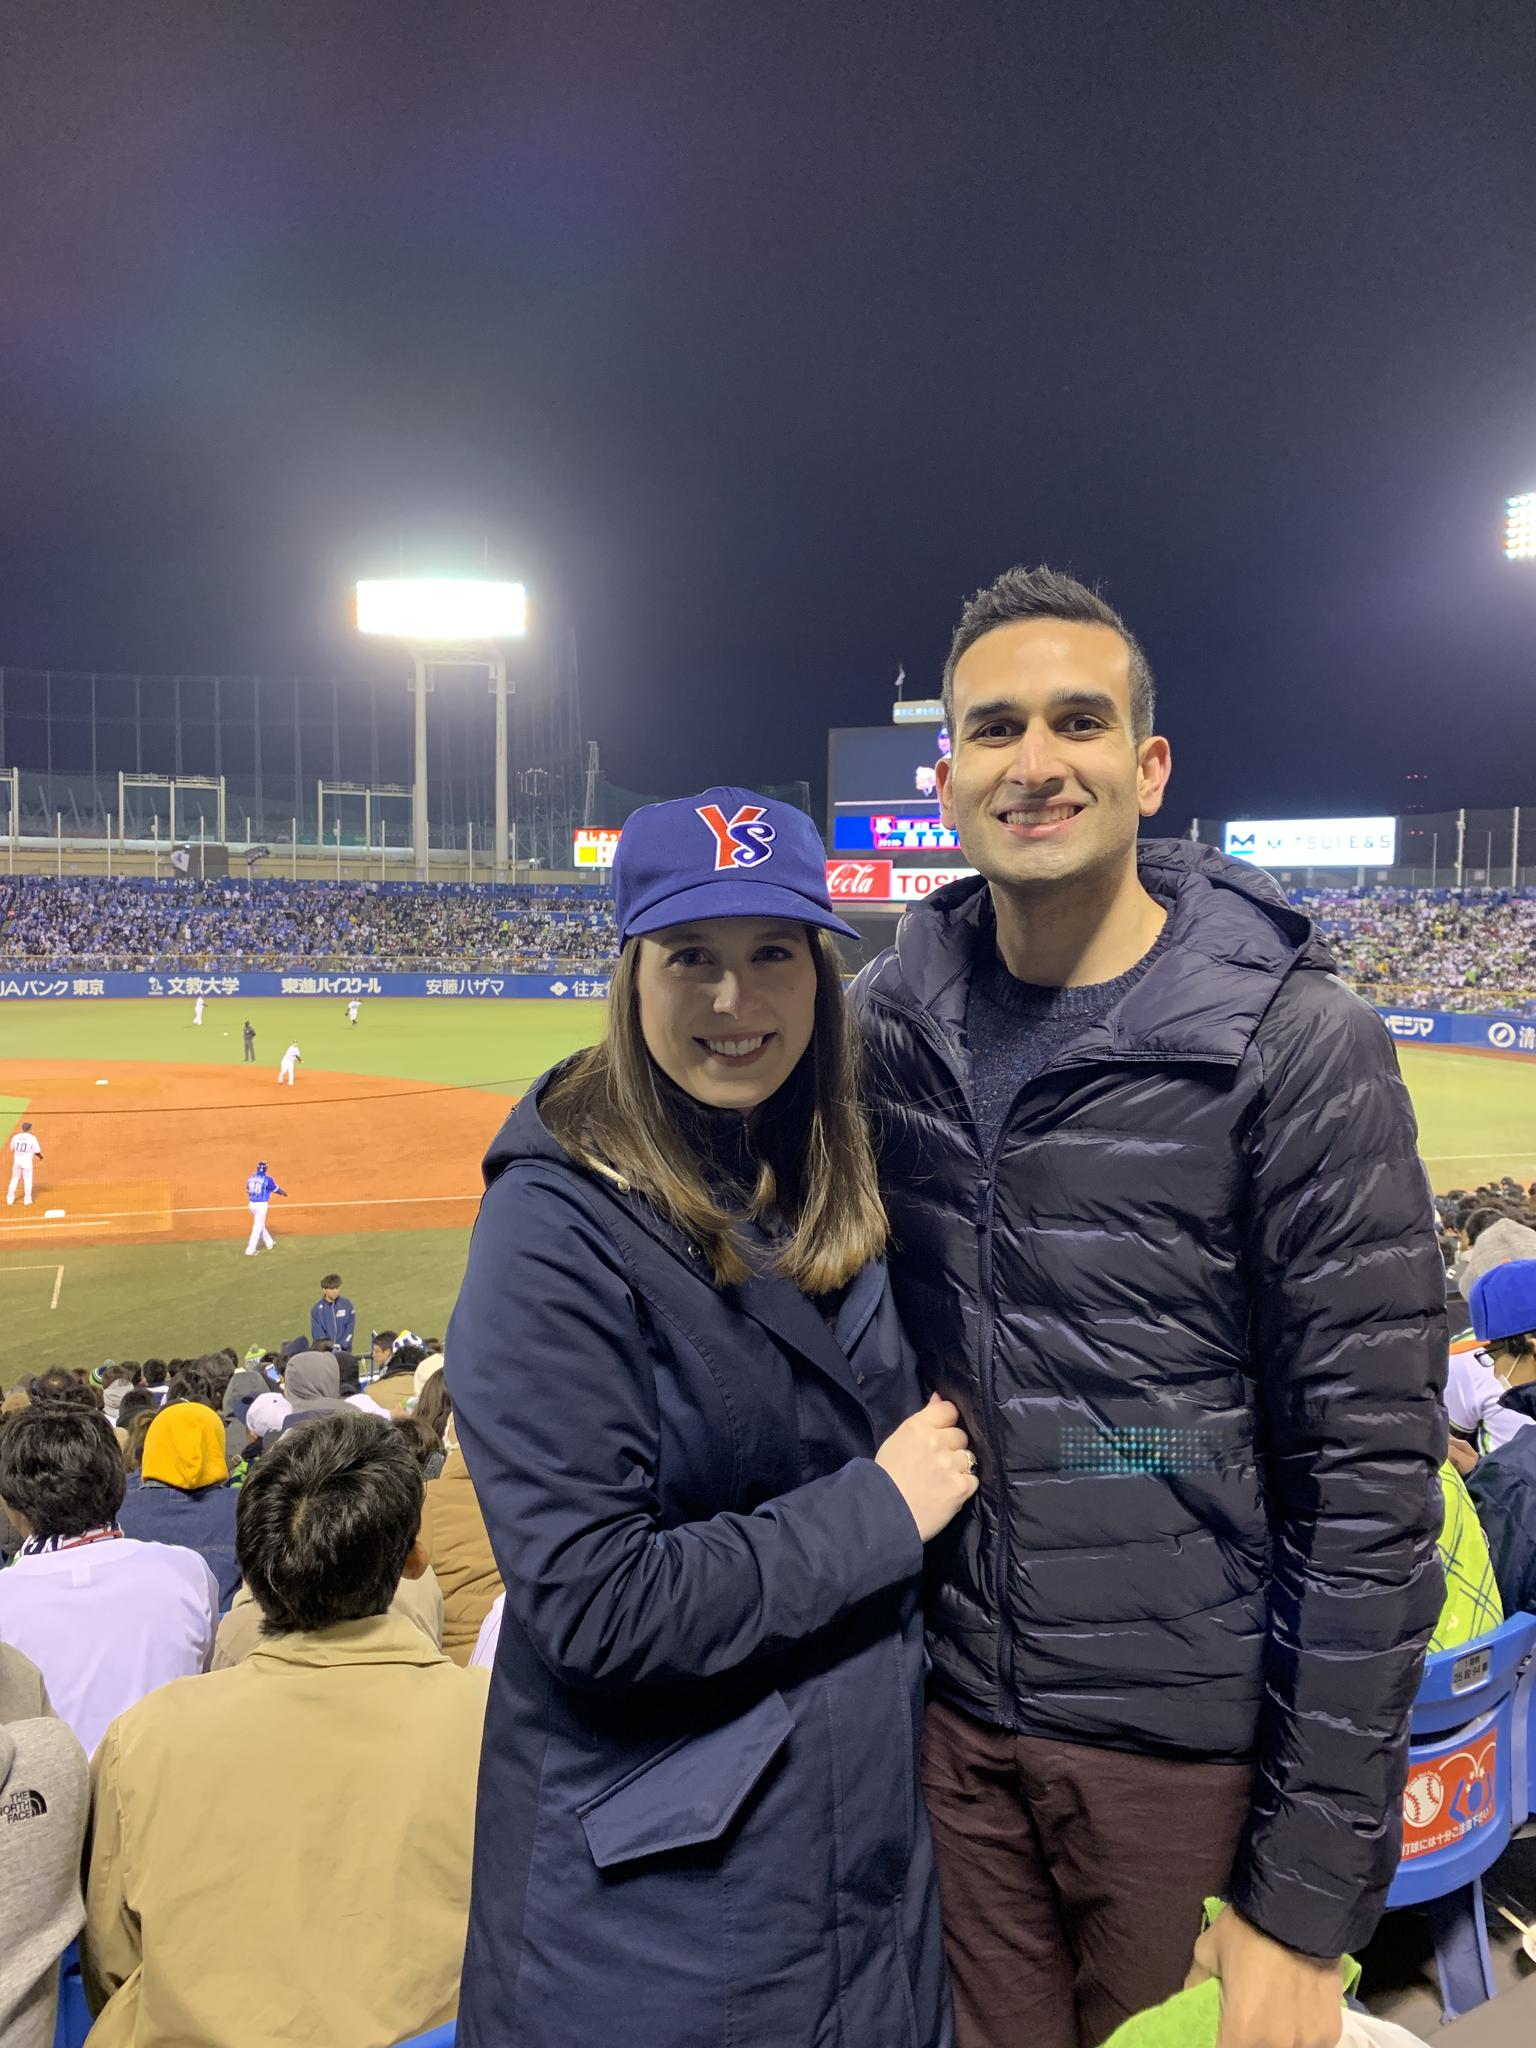 After our Japan trip, we're Yakult Swallows fans! American baseball should definitely take a few pointers from the Nippon Baseball League - so fun!!